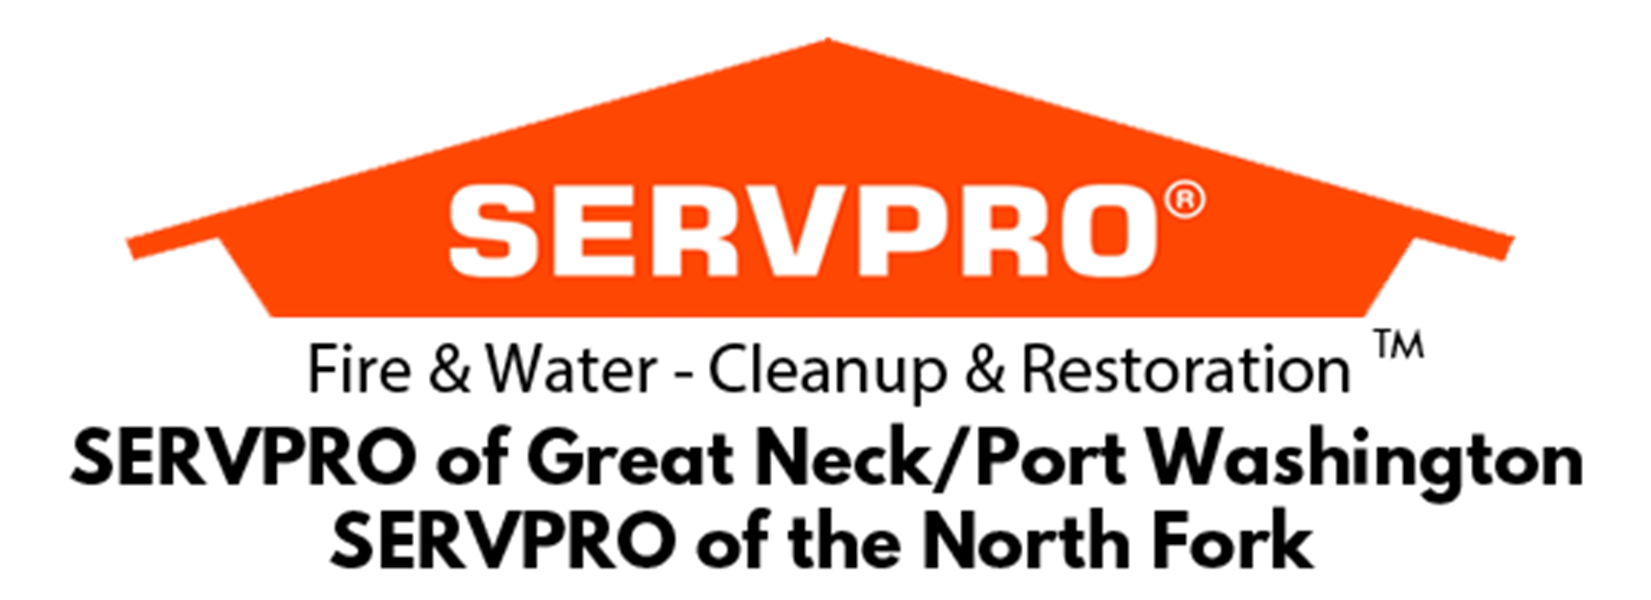 SERVPRO of the North Fork